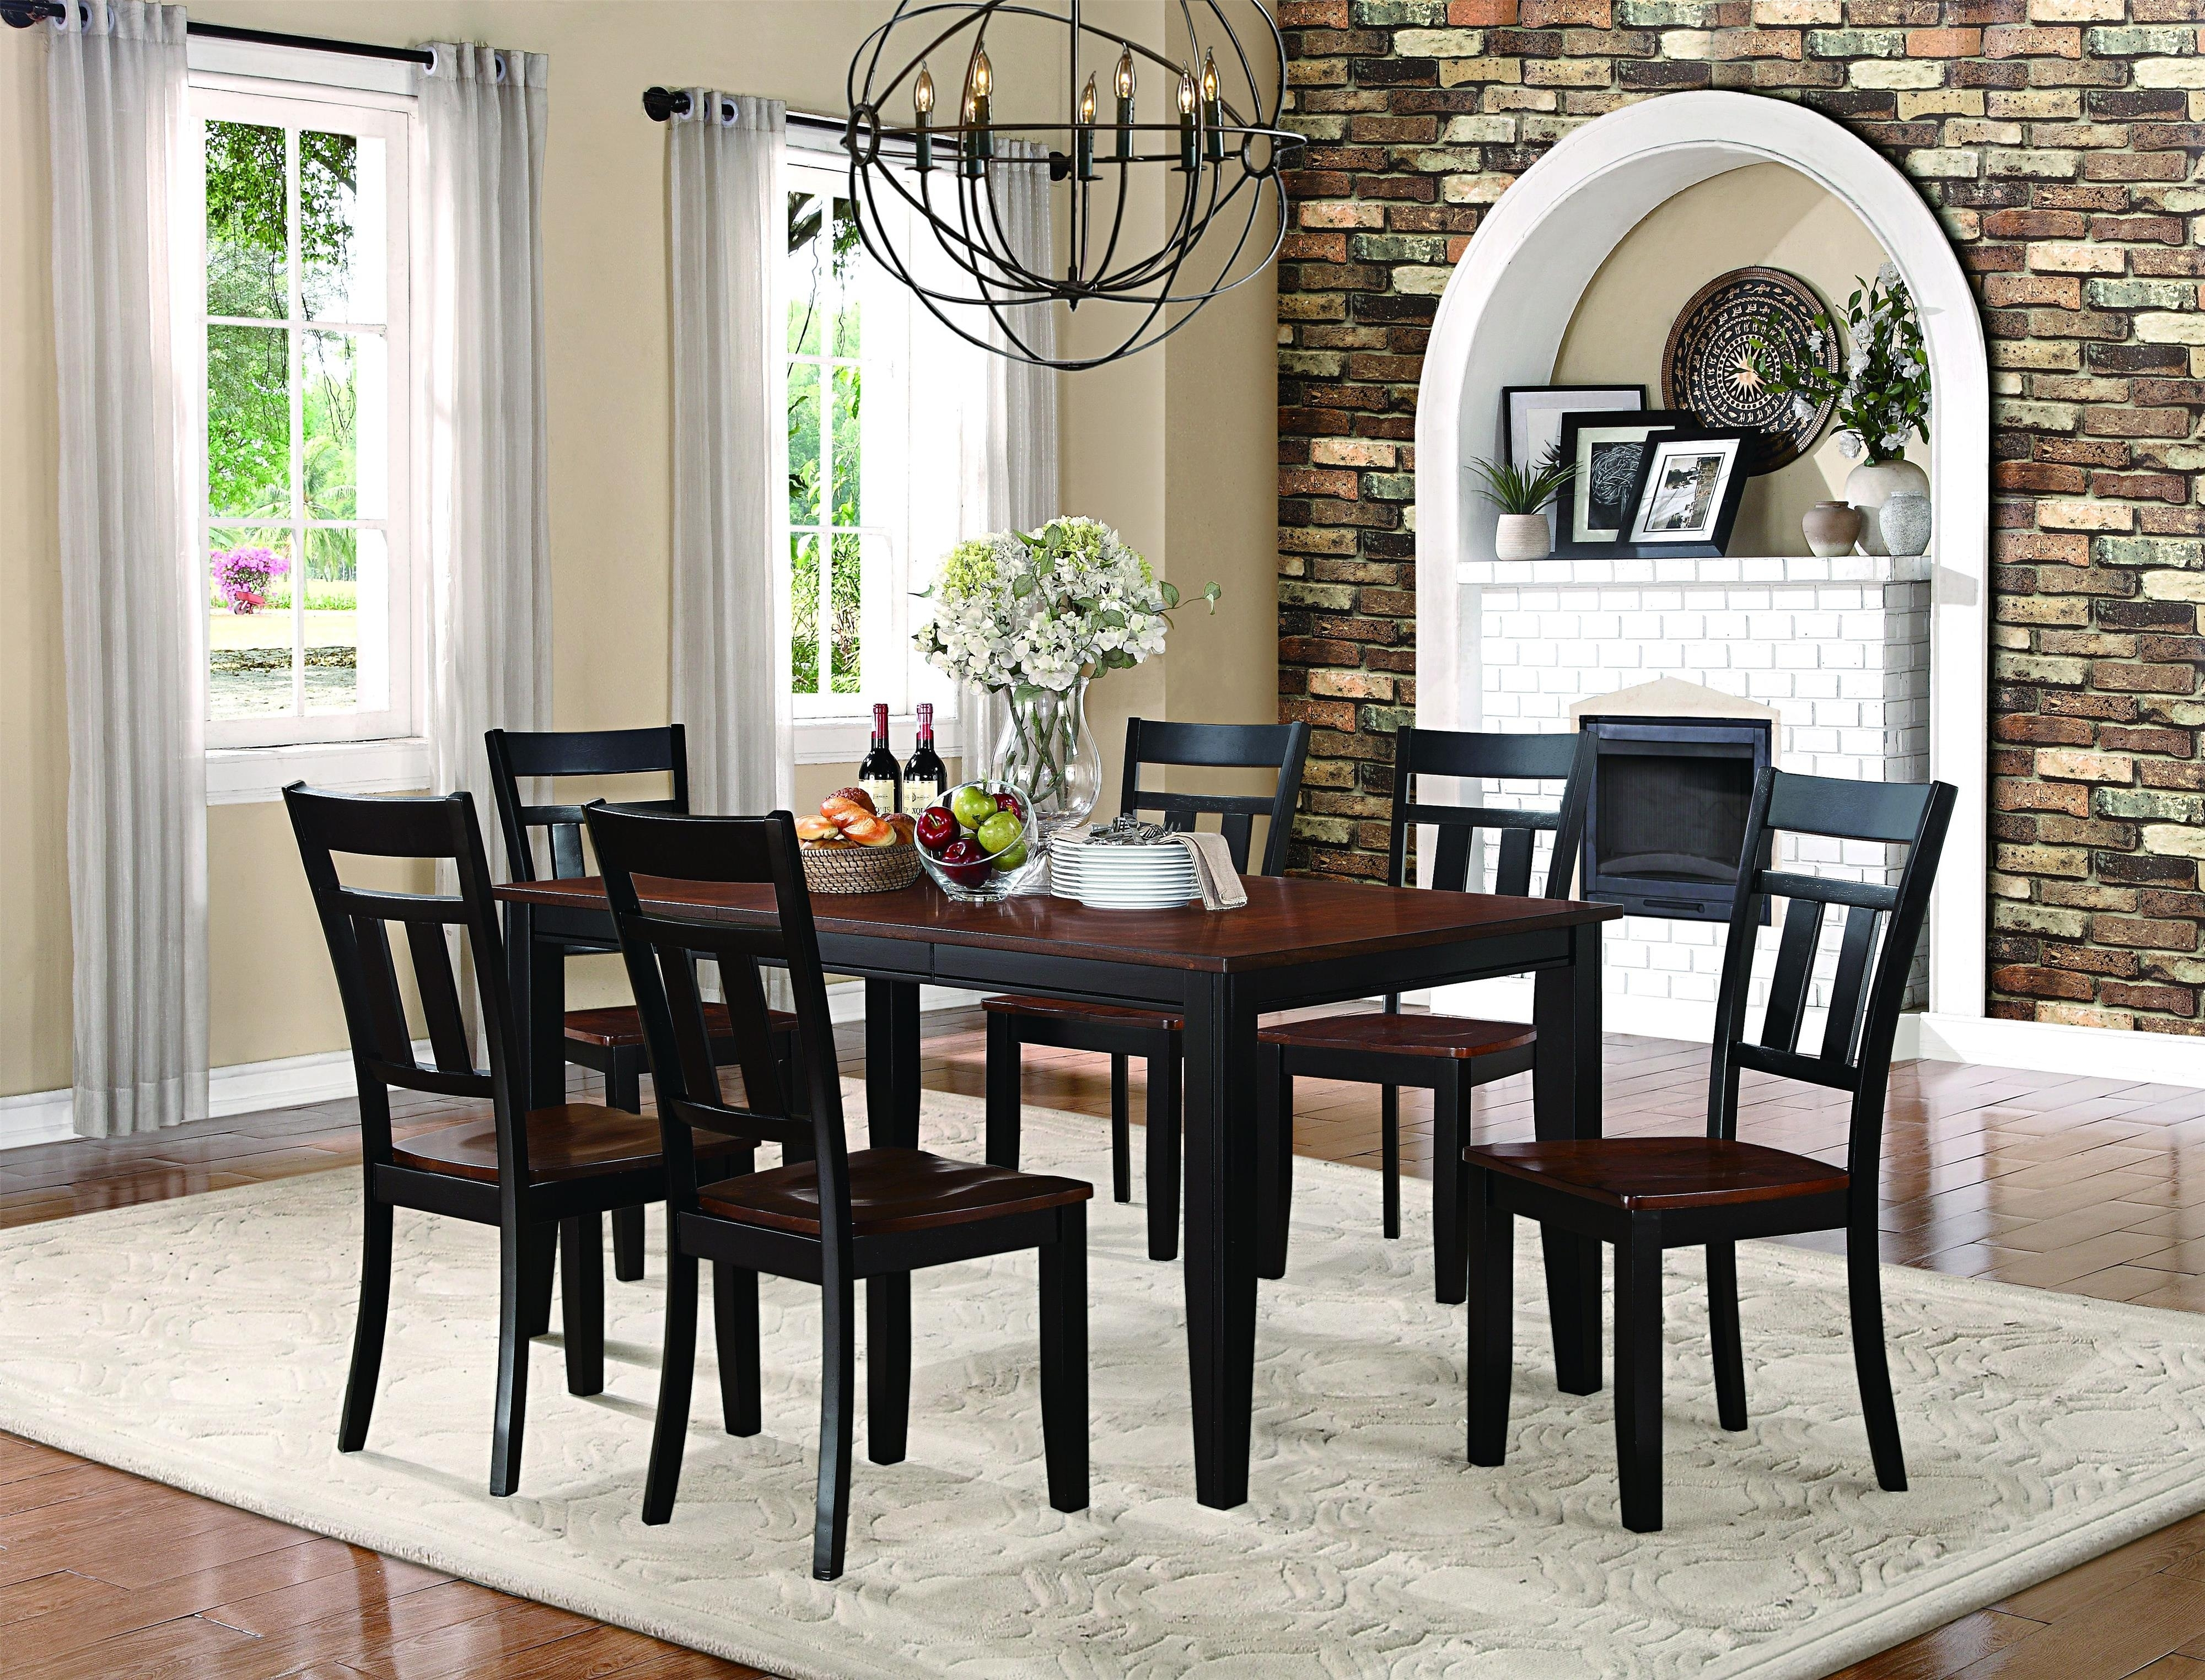 Homelegance Westport 7 Piece Dining Set | Northeast Factory Direct Throughout Most Up To Date Caden 5 Piece Round Dining Sets (Photo 11 of 20)